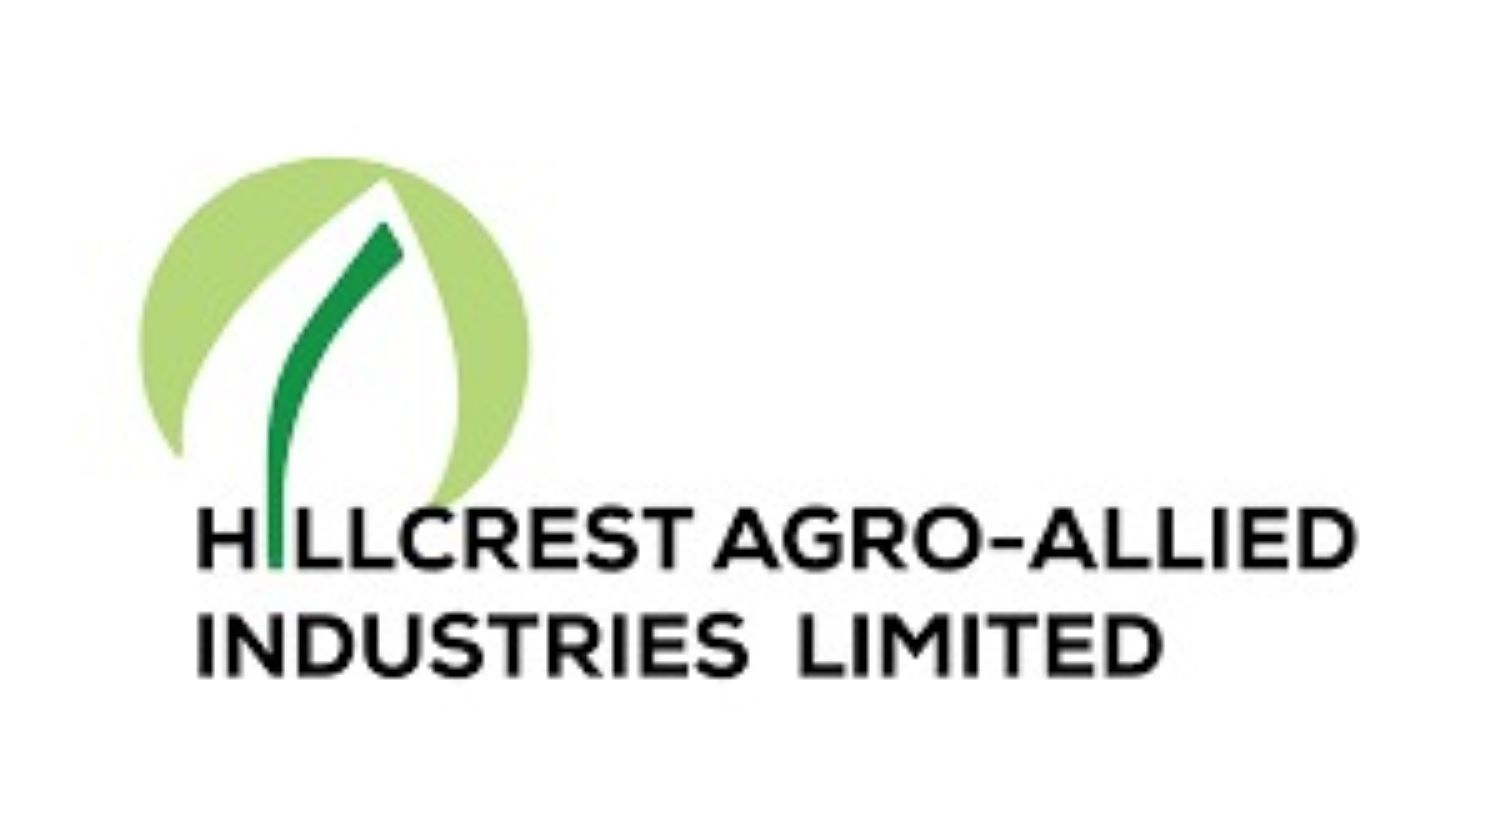 Hill Crest Agro-Allied